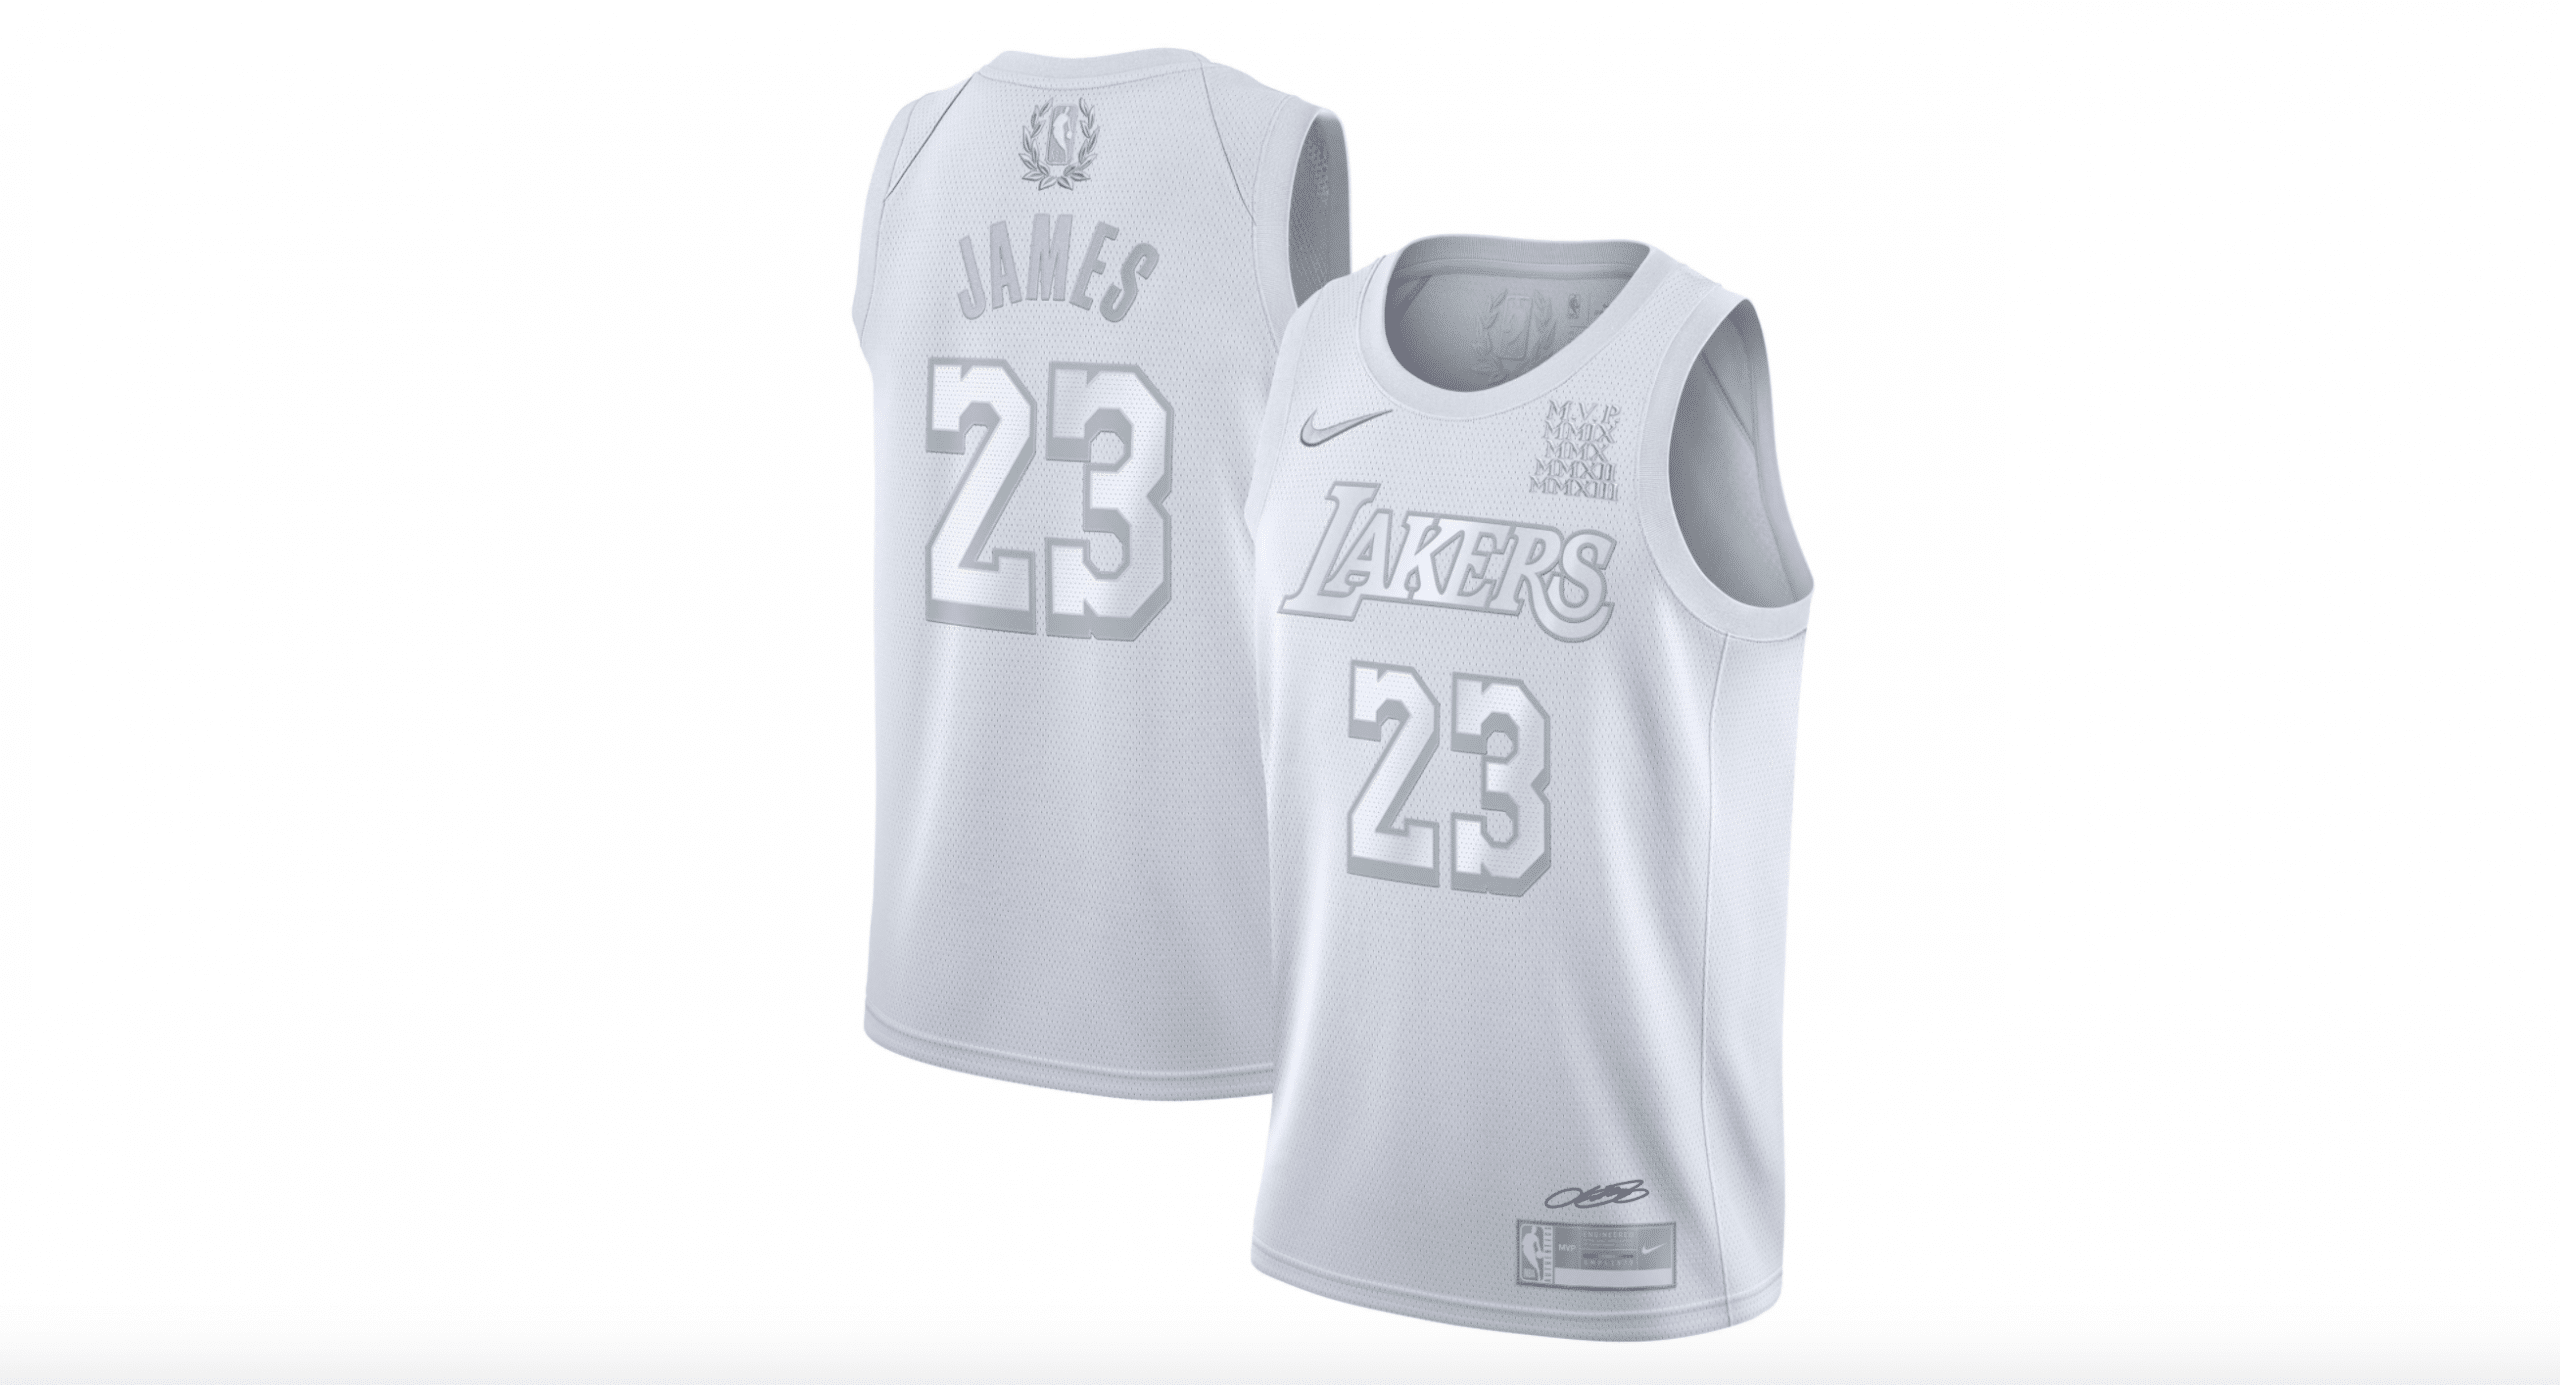 Maillots MVP Nike, Collection MVP Jersey | basketpack